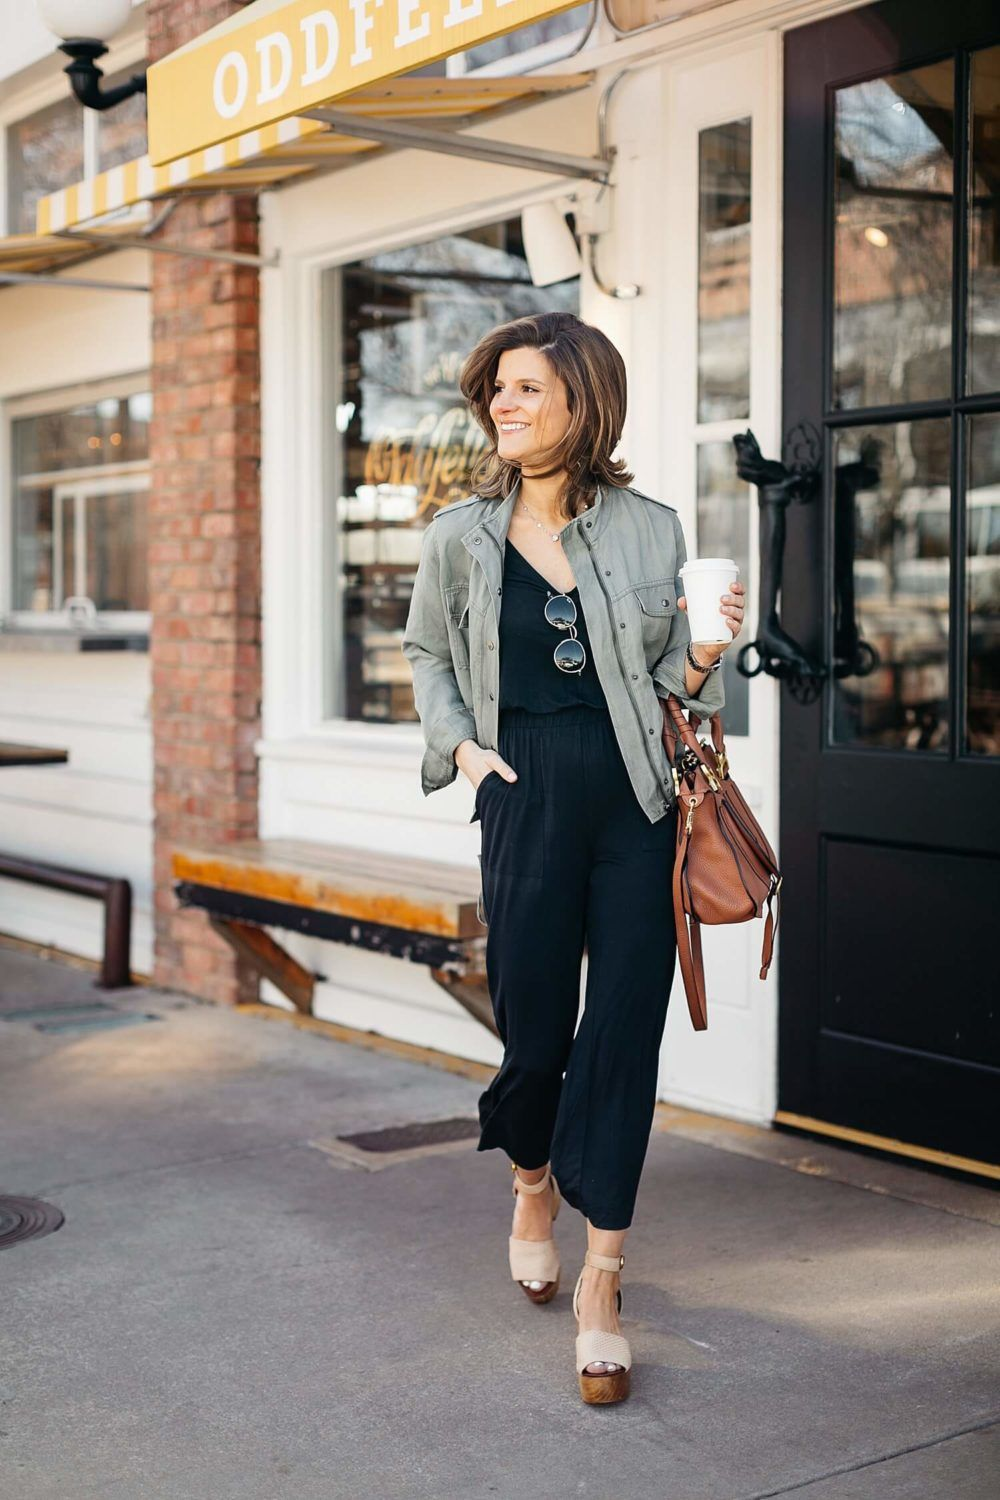 c6a7f6eff1 black jumpsuit paired with olive green utility jacket military jacket  outfit  fall  ootd  style